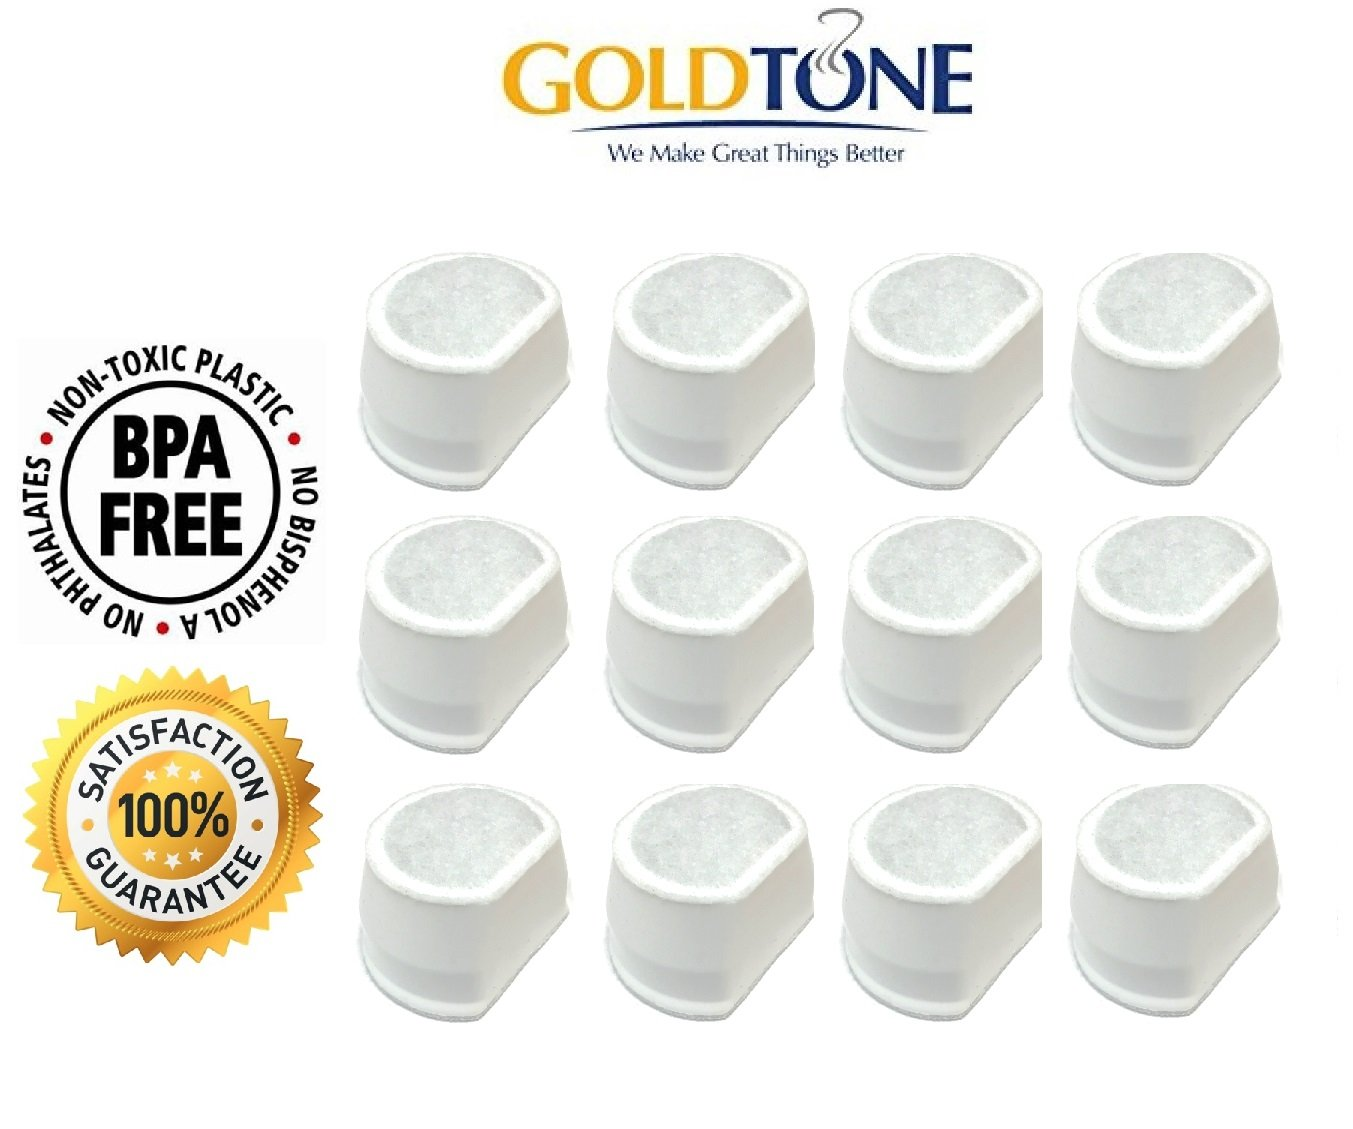 GoldTone Branded 12 pack Replacement Pet Fountain Water Filters for Drinkwell Avalon Drinkwell Pagoda Drinkwell Sedona Pet Fountains 12 Filters